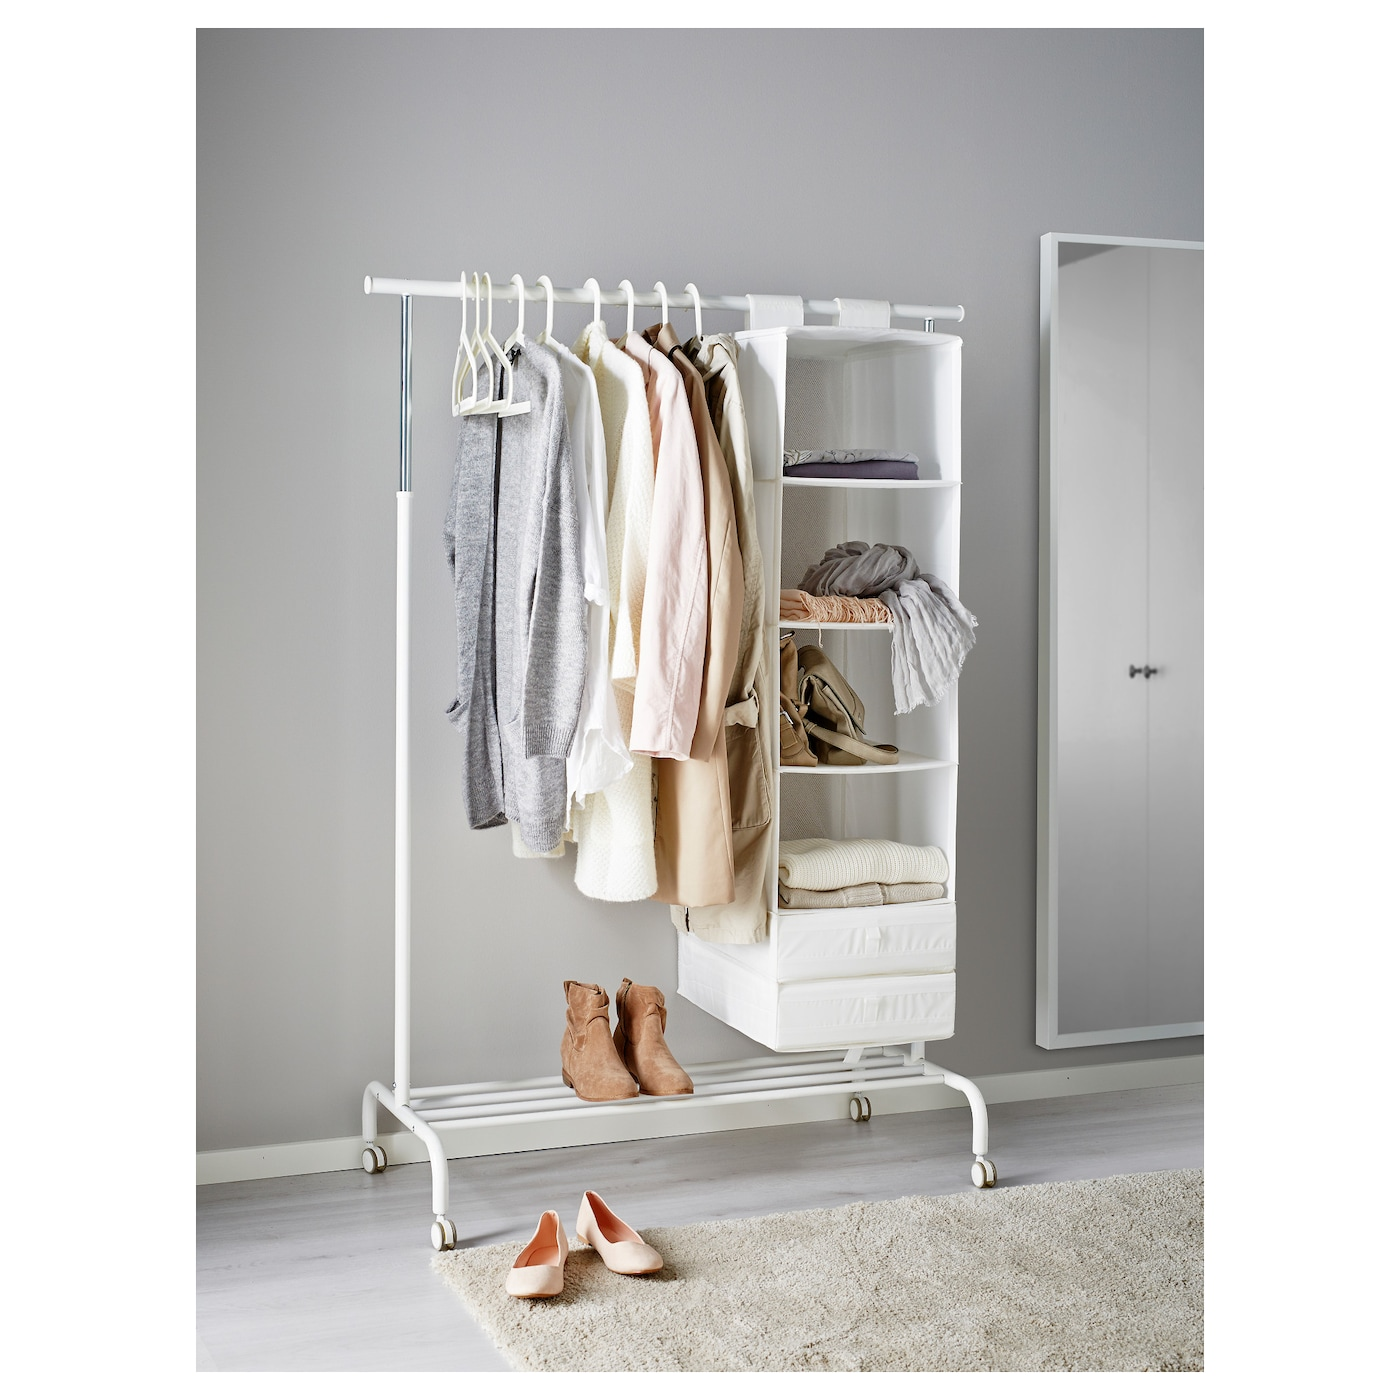 rigga clothes rack white ikea. Black Bedroom Furniture Sets. Home Design Ideas